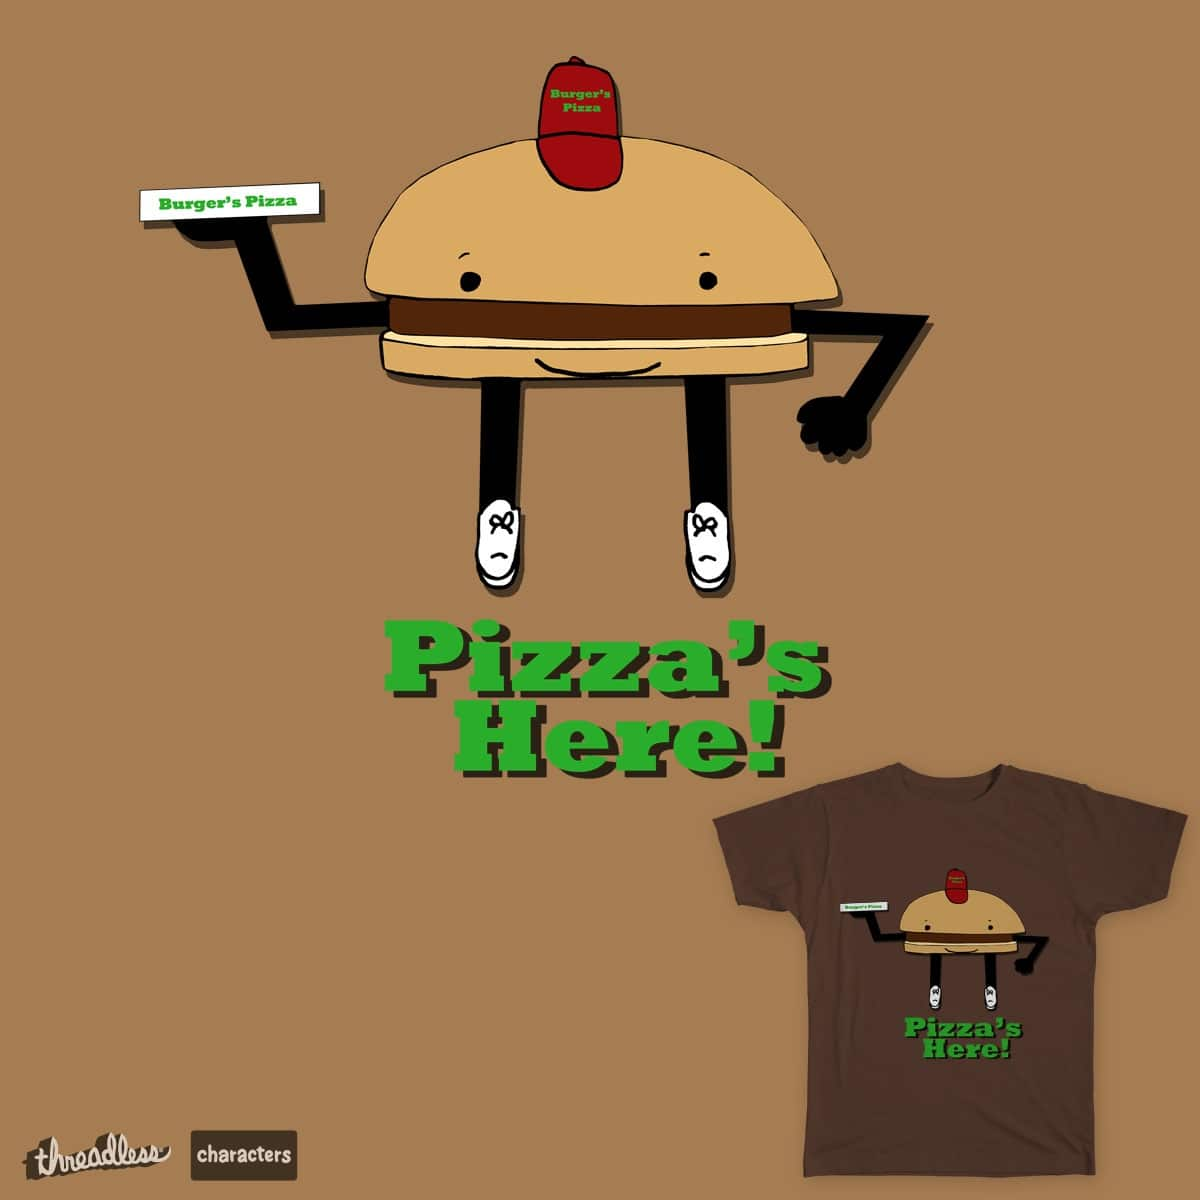 Burger's Pizza by cmschulz on Threadless